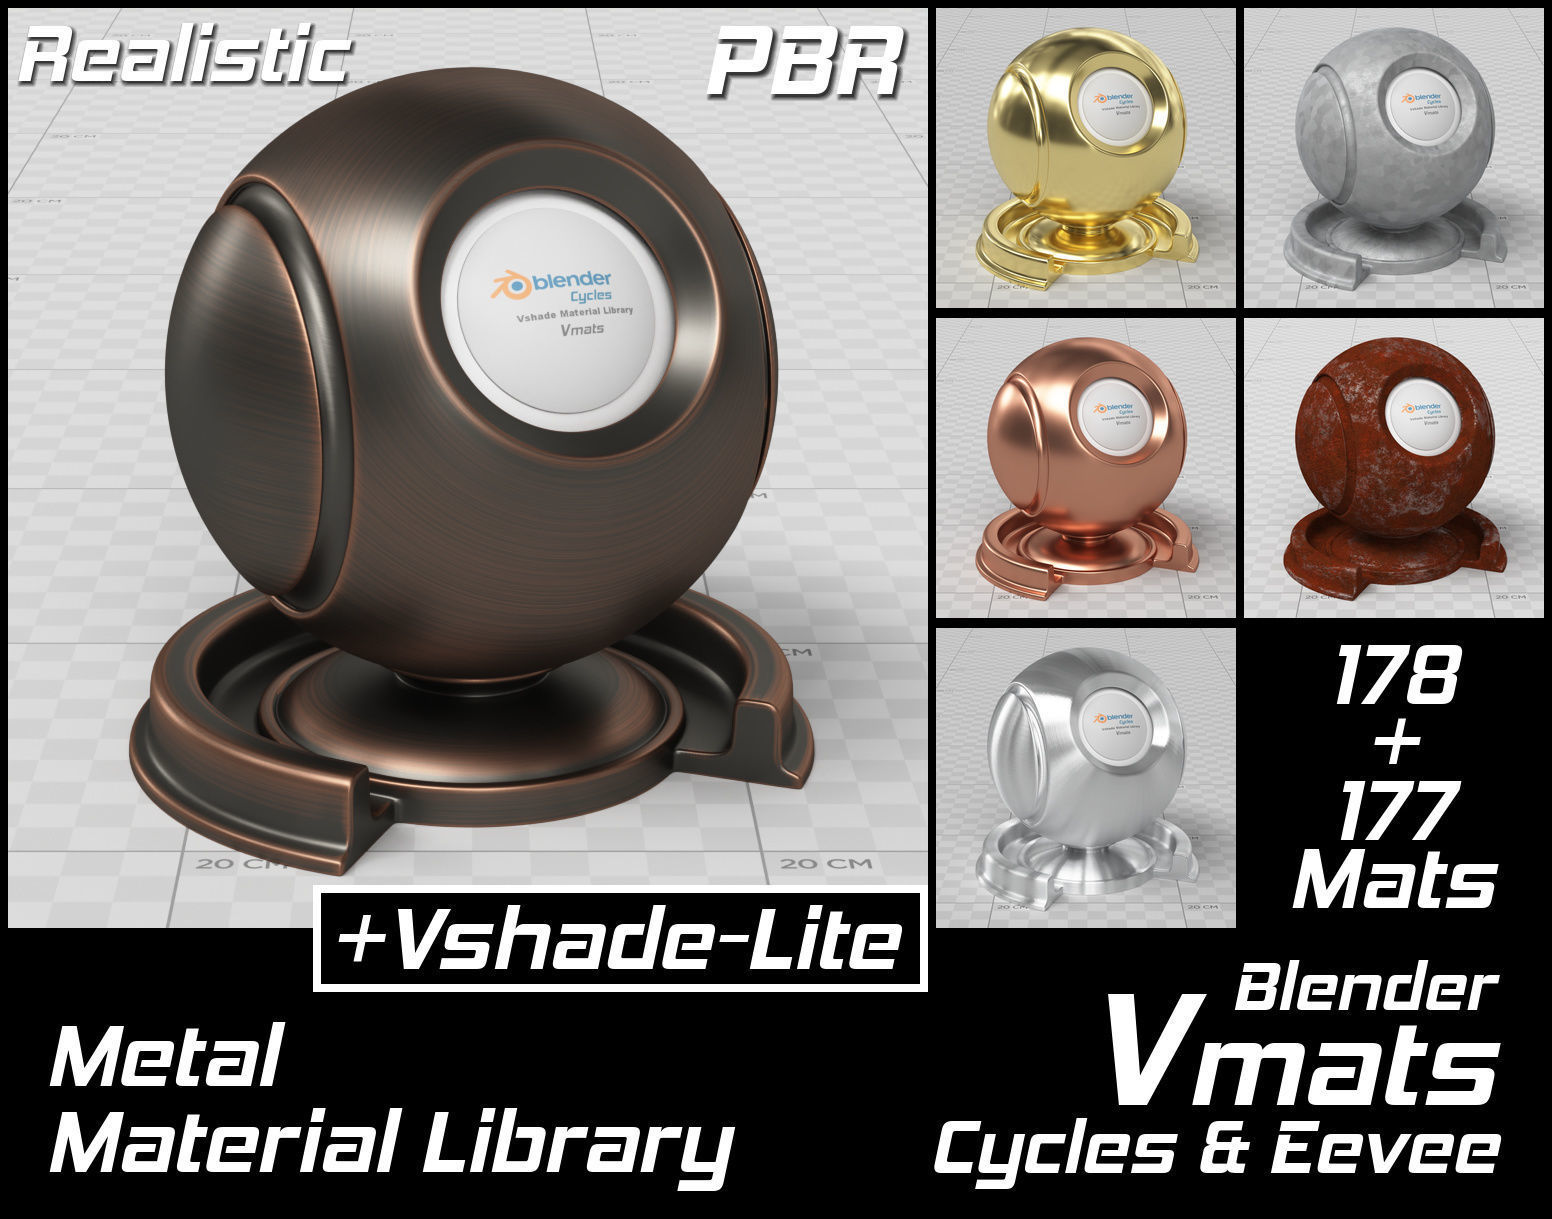 VMATS Metal Material Library for Blender Cycles and Eevee